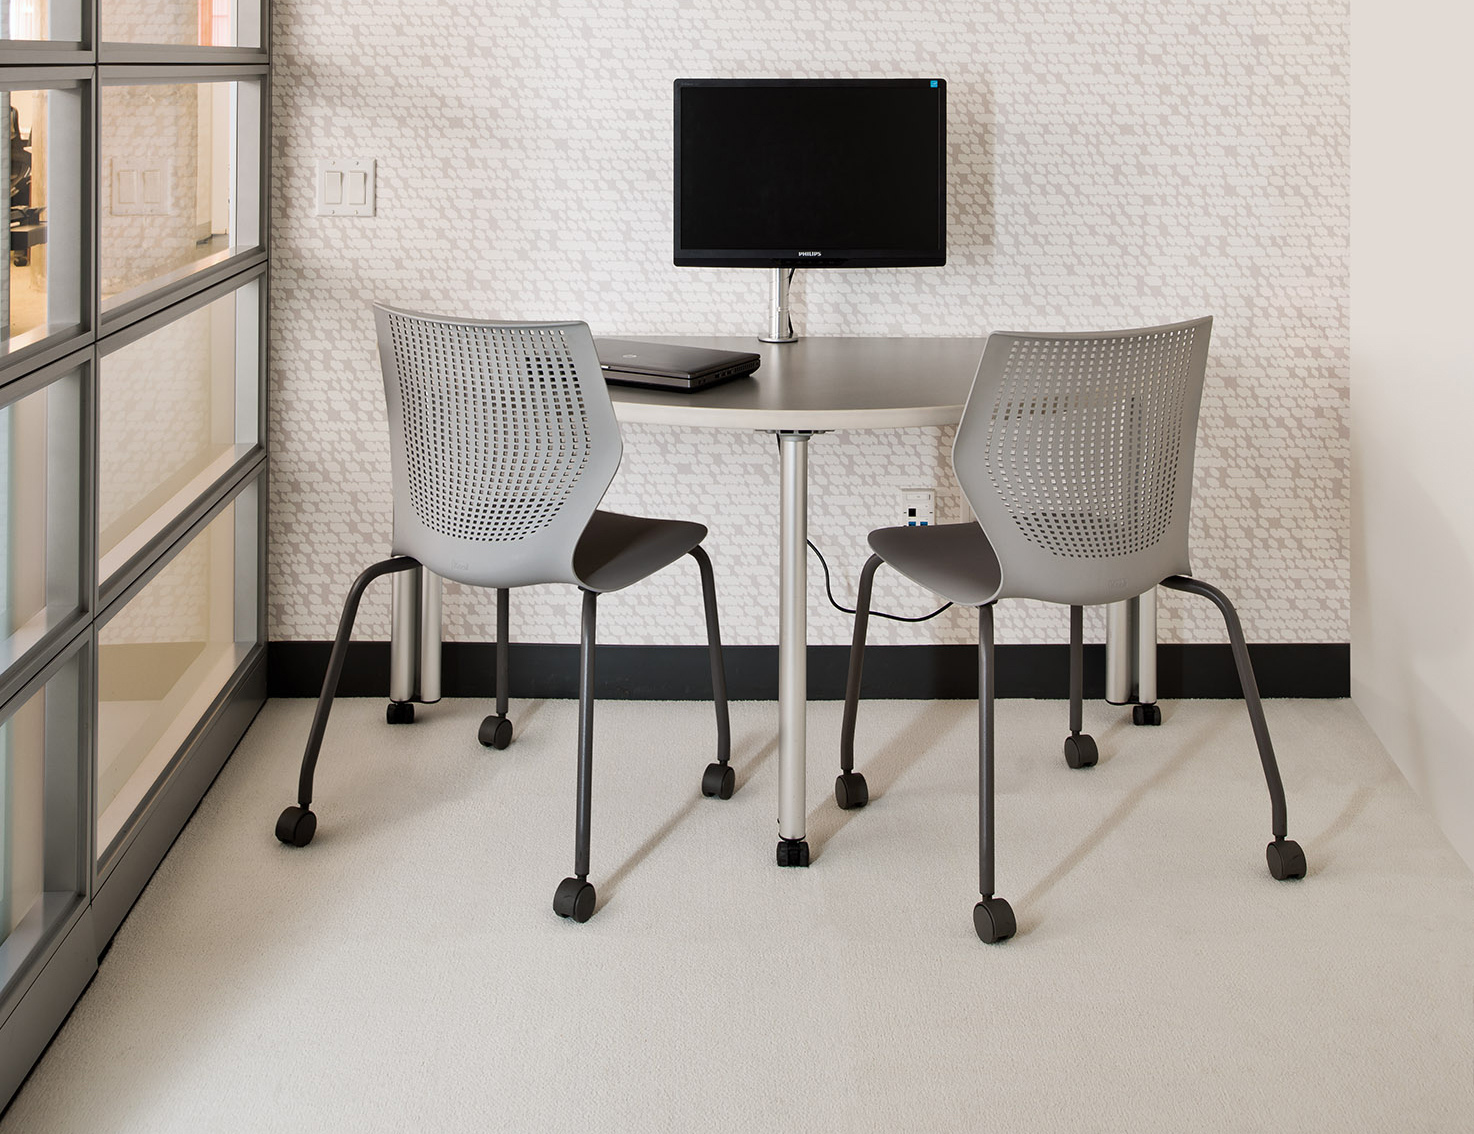 Upstart Training Table with MultiGeneration Chairs